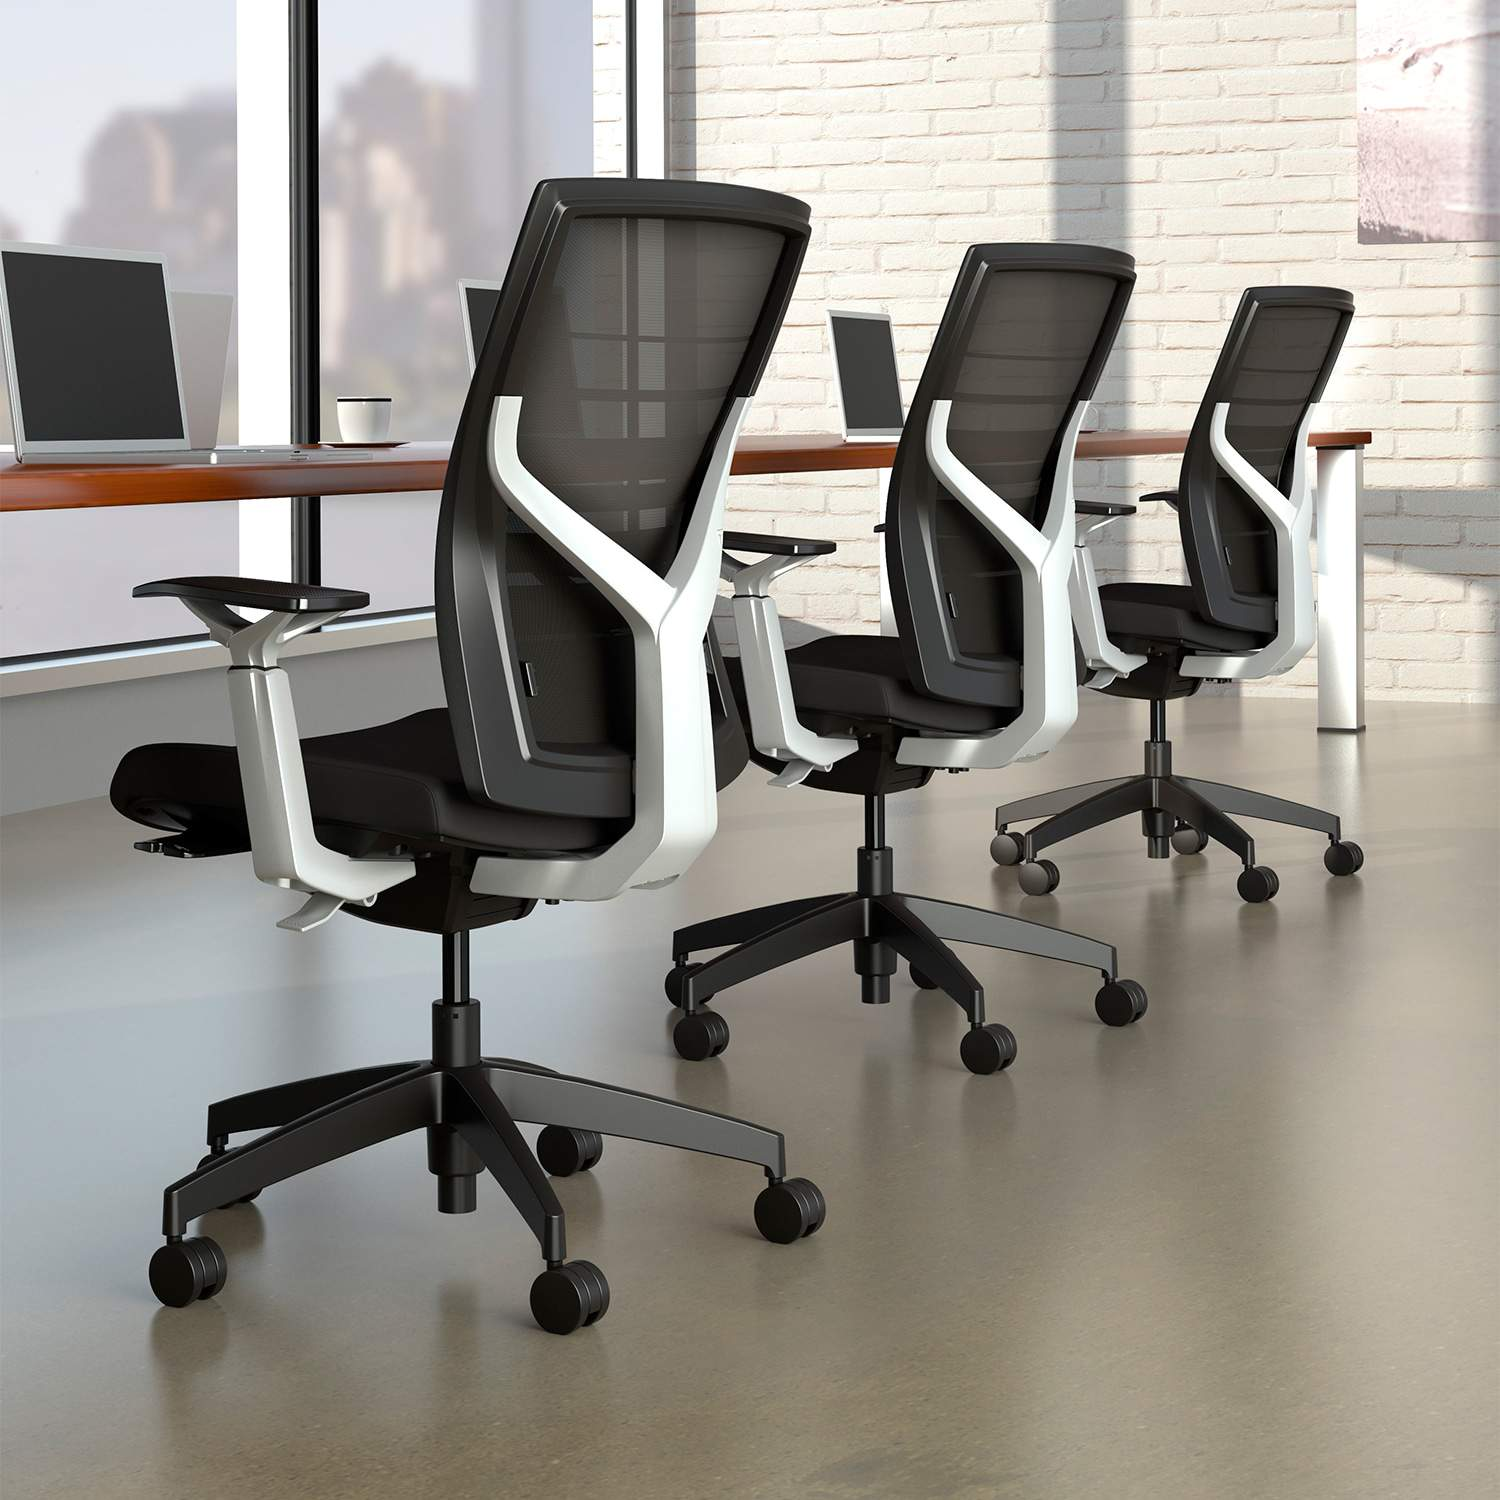 ergonomic office chair adjustable seat depth